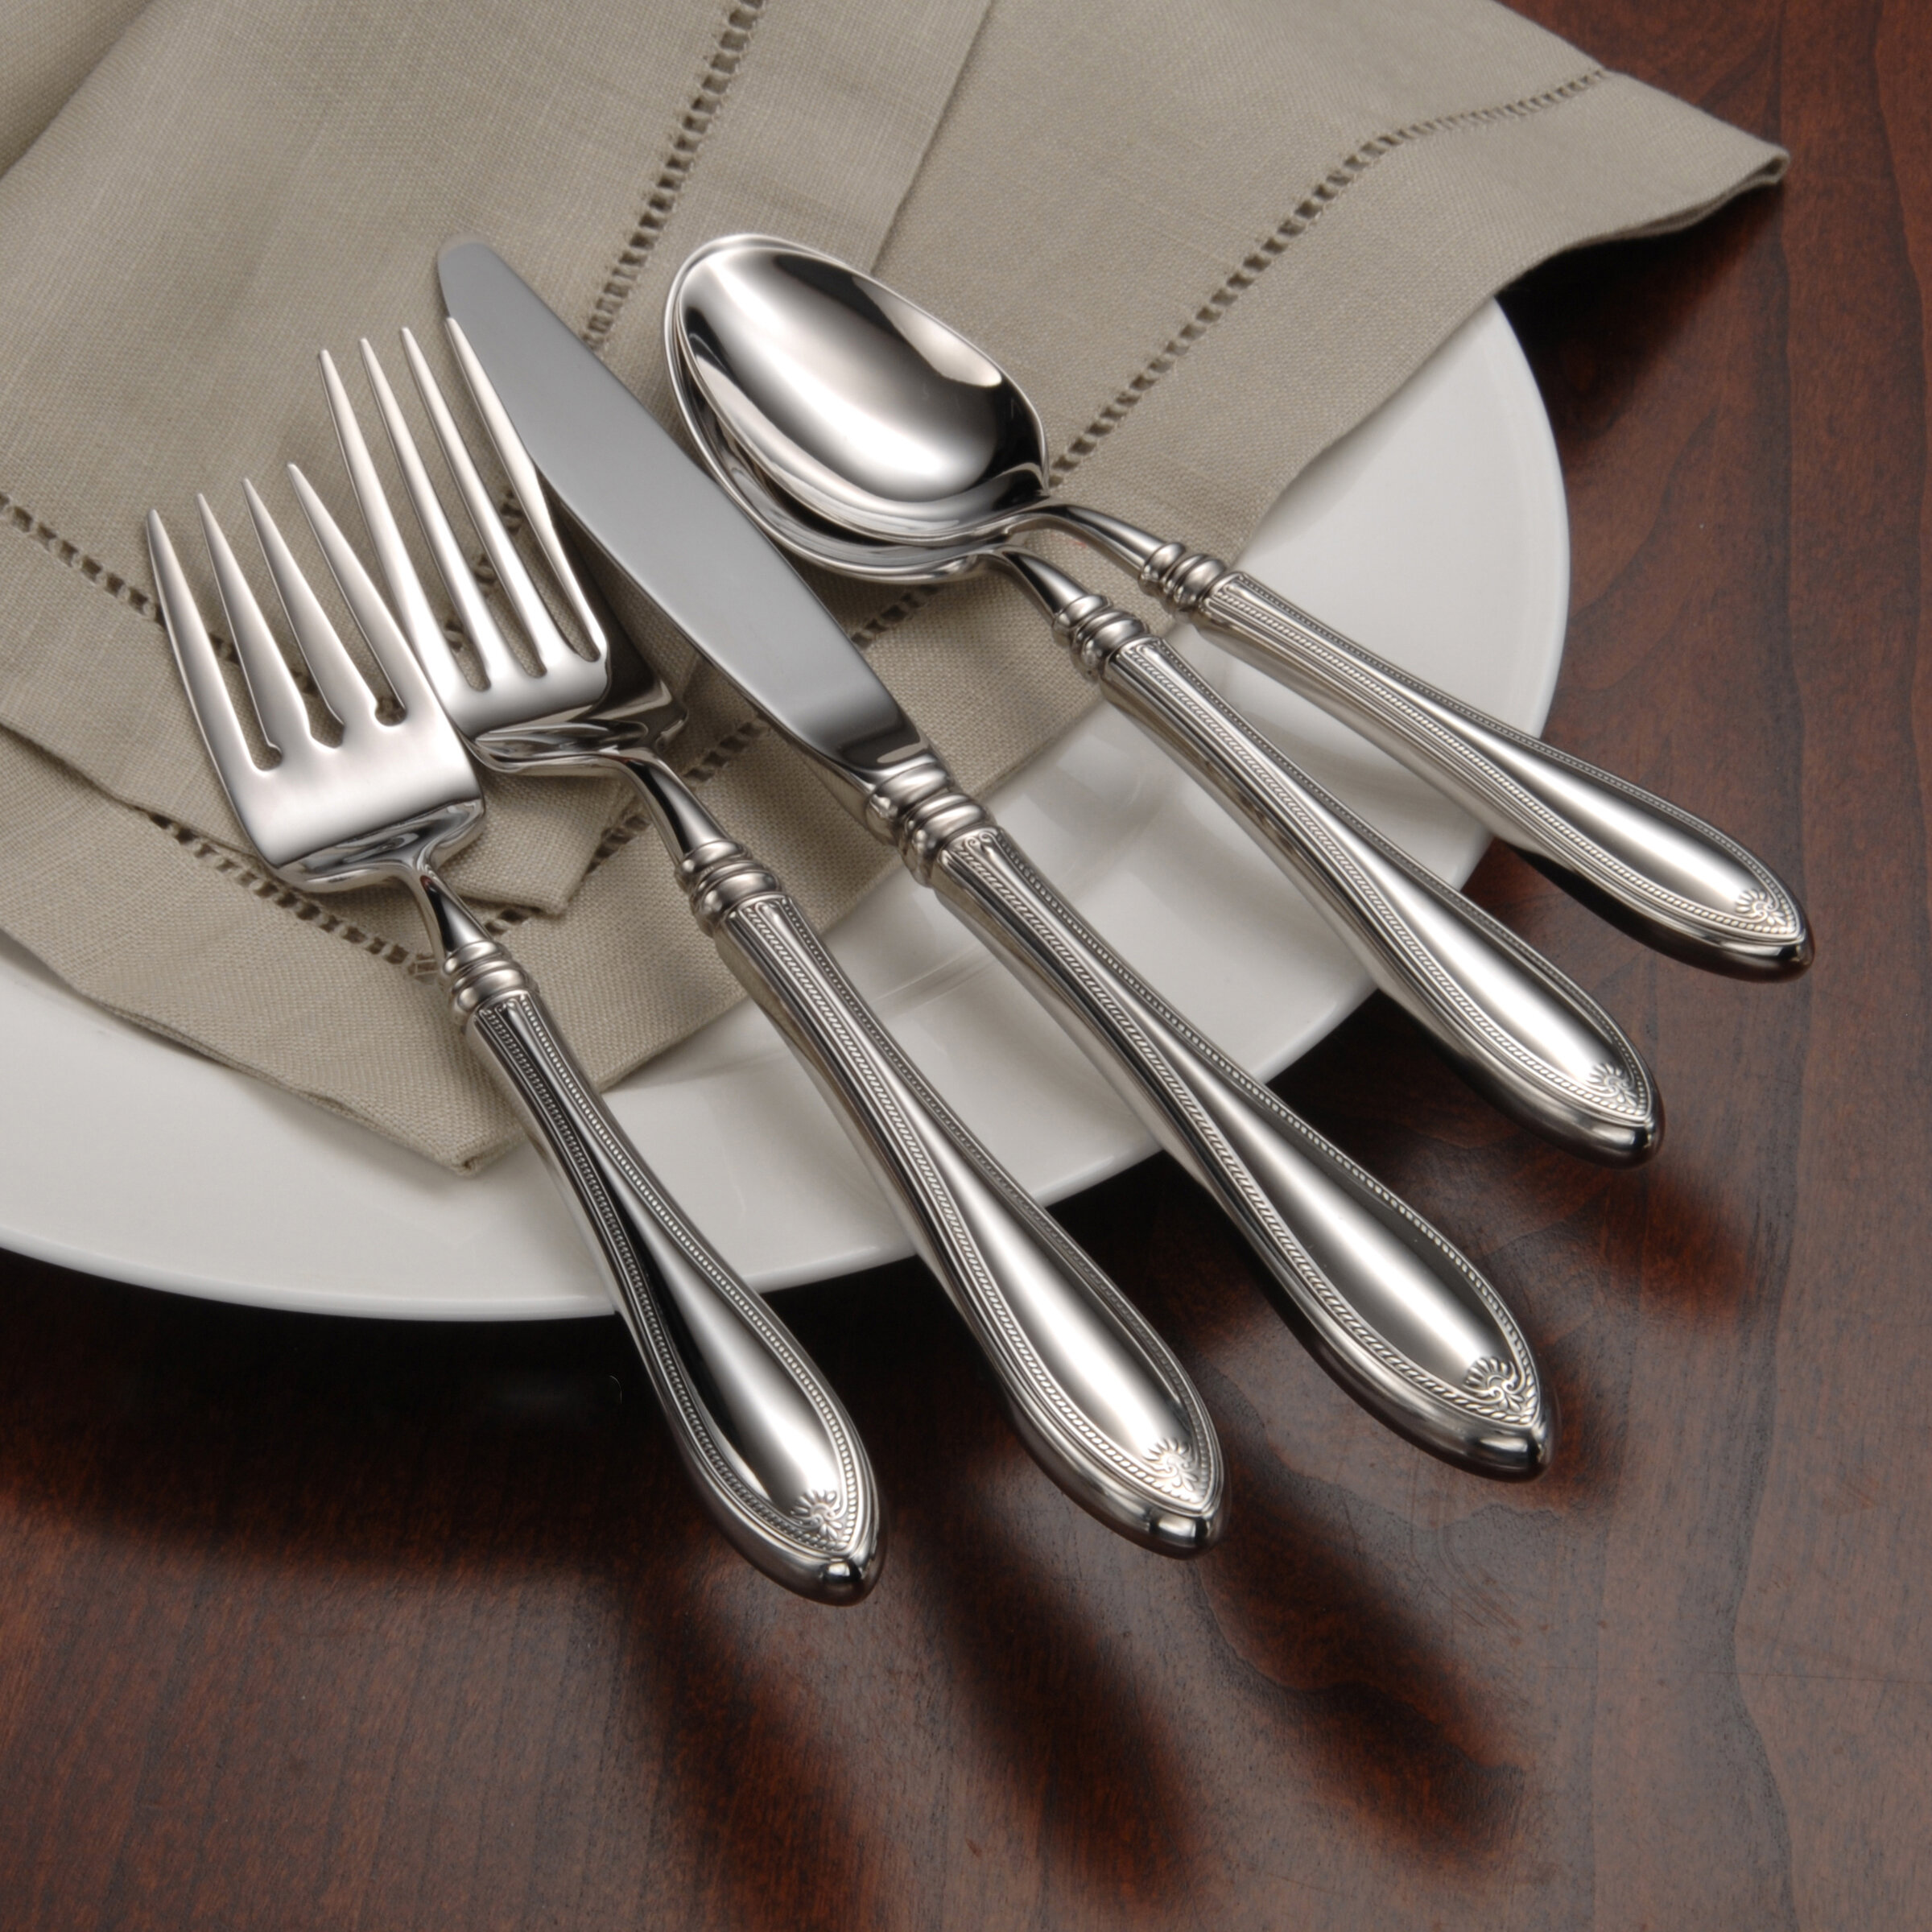 New Oneida Stainless Flatware BOUTONNIERE Set of 5 Serving Pieces